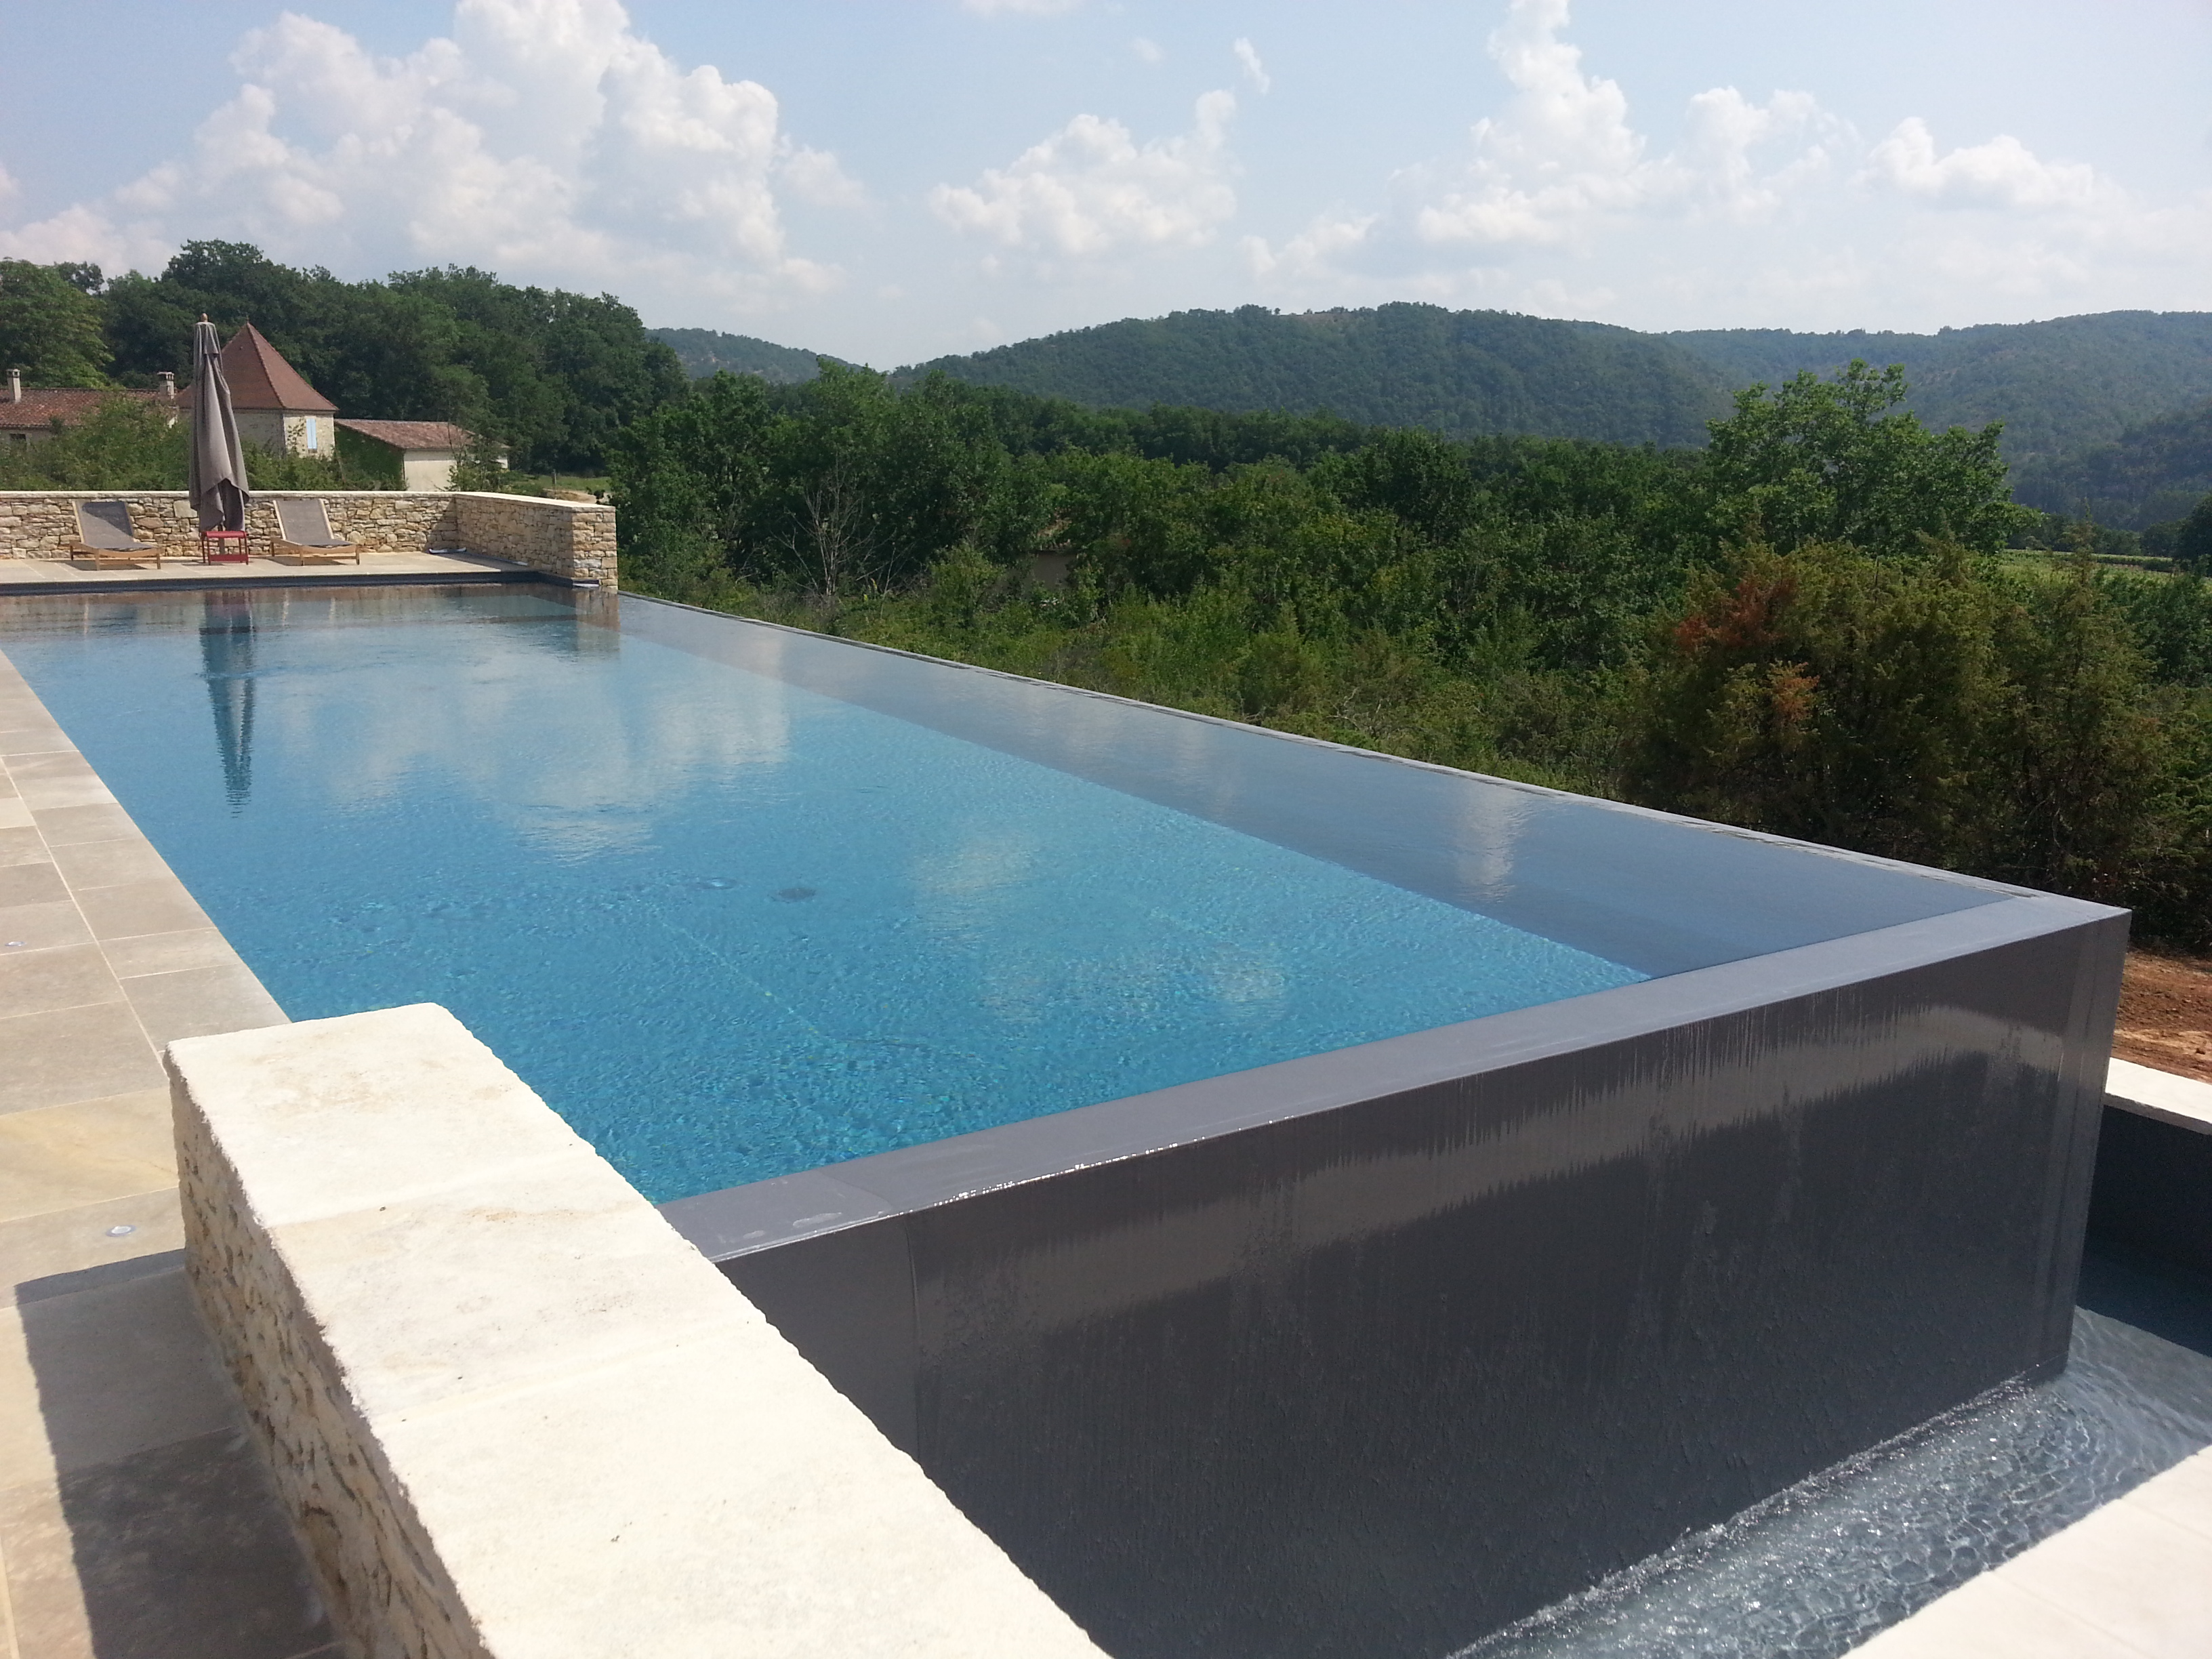 Constructeur de piscine d bordement en haute garonne for Construction piscine everblue